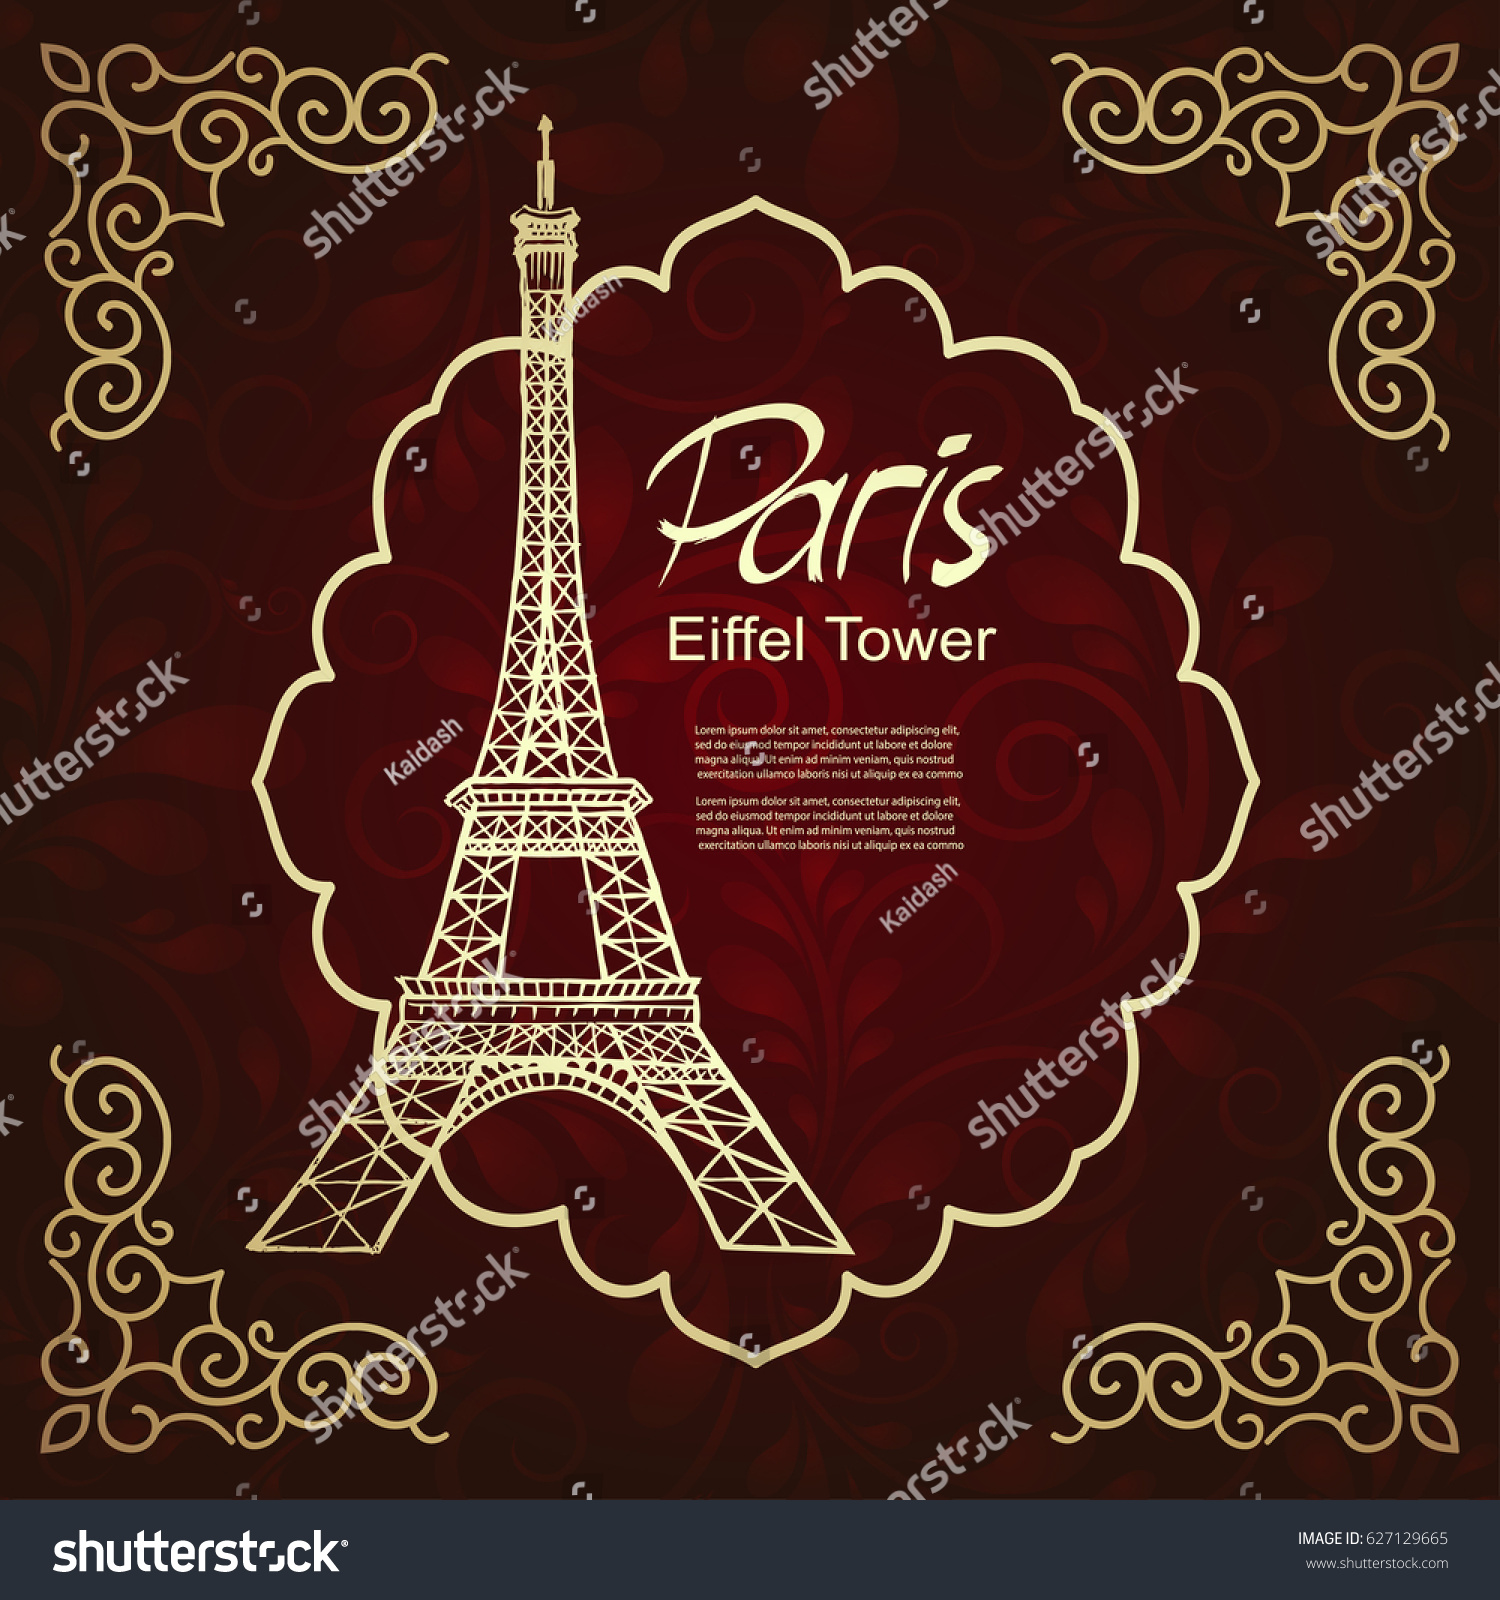 Eiffel Tower Greeting Card Stock Vector (Royalty Free) 627129665 ...